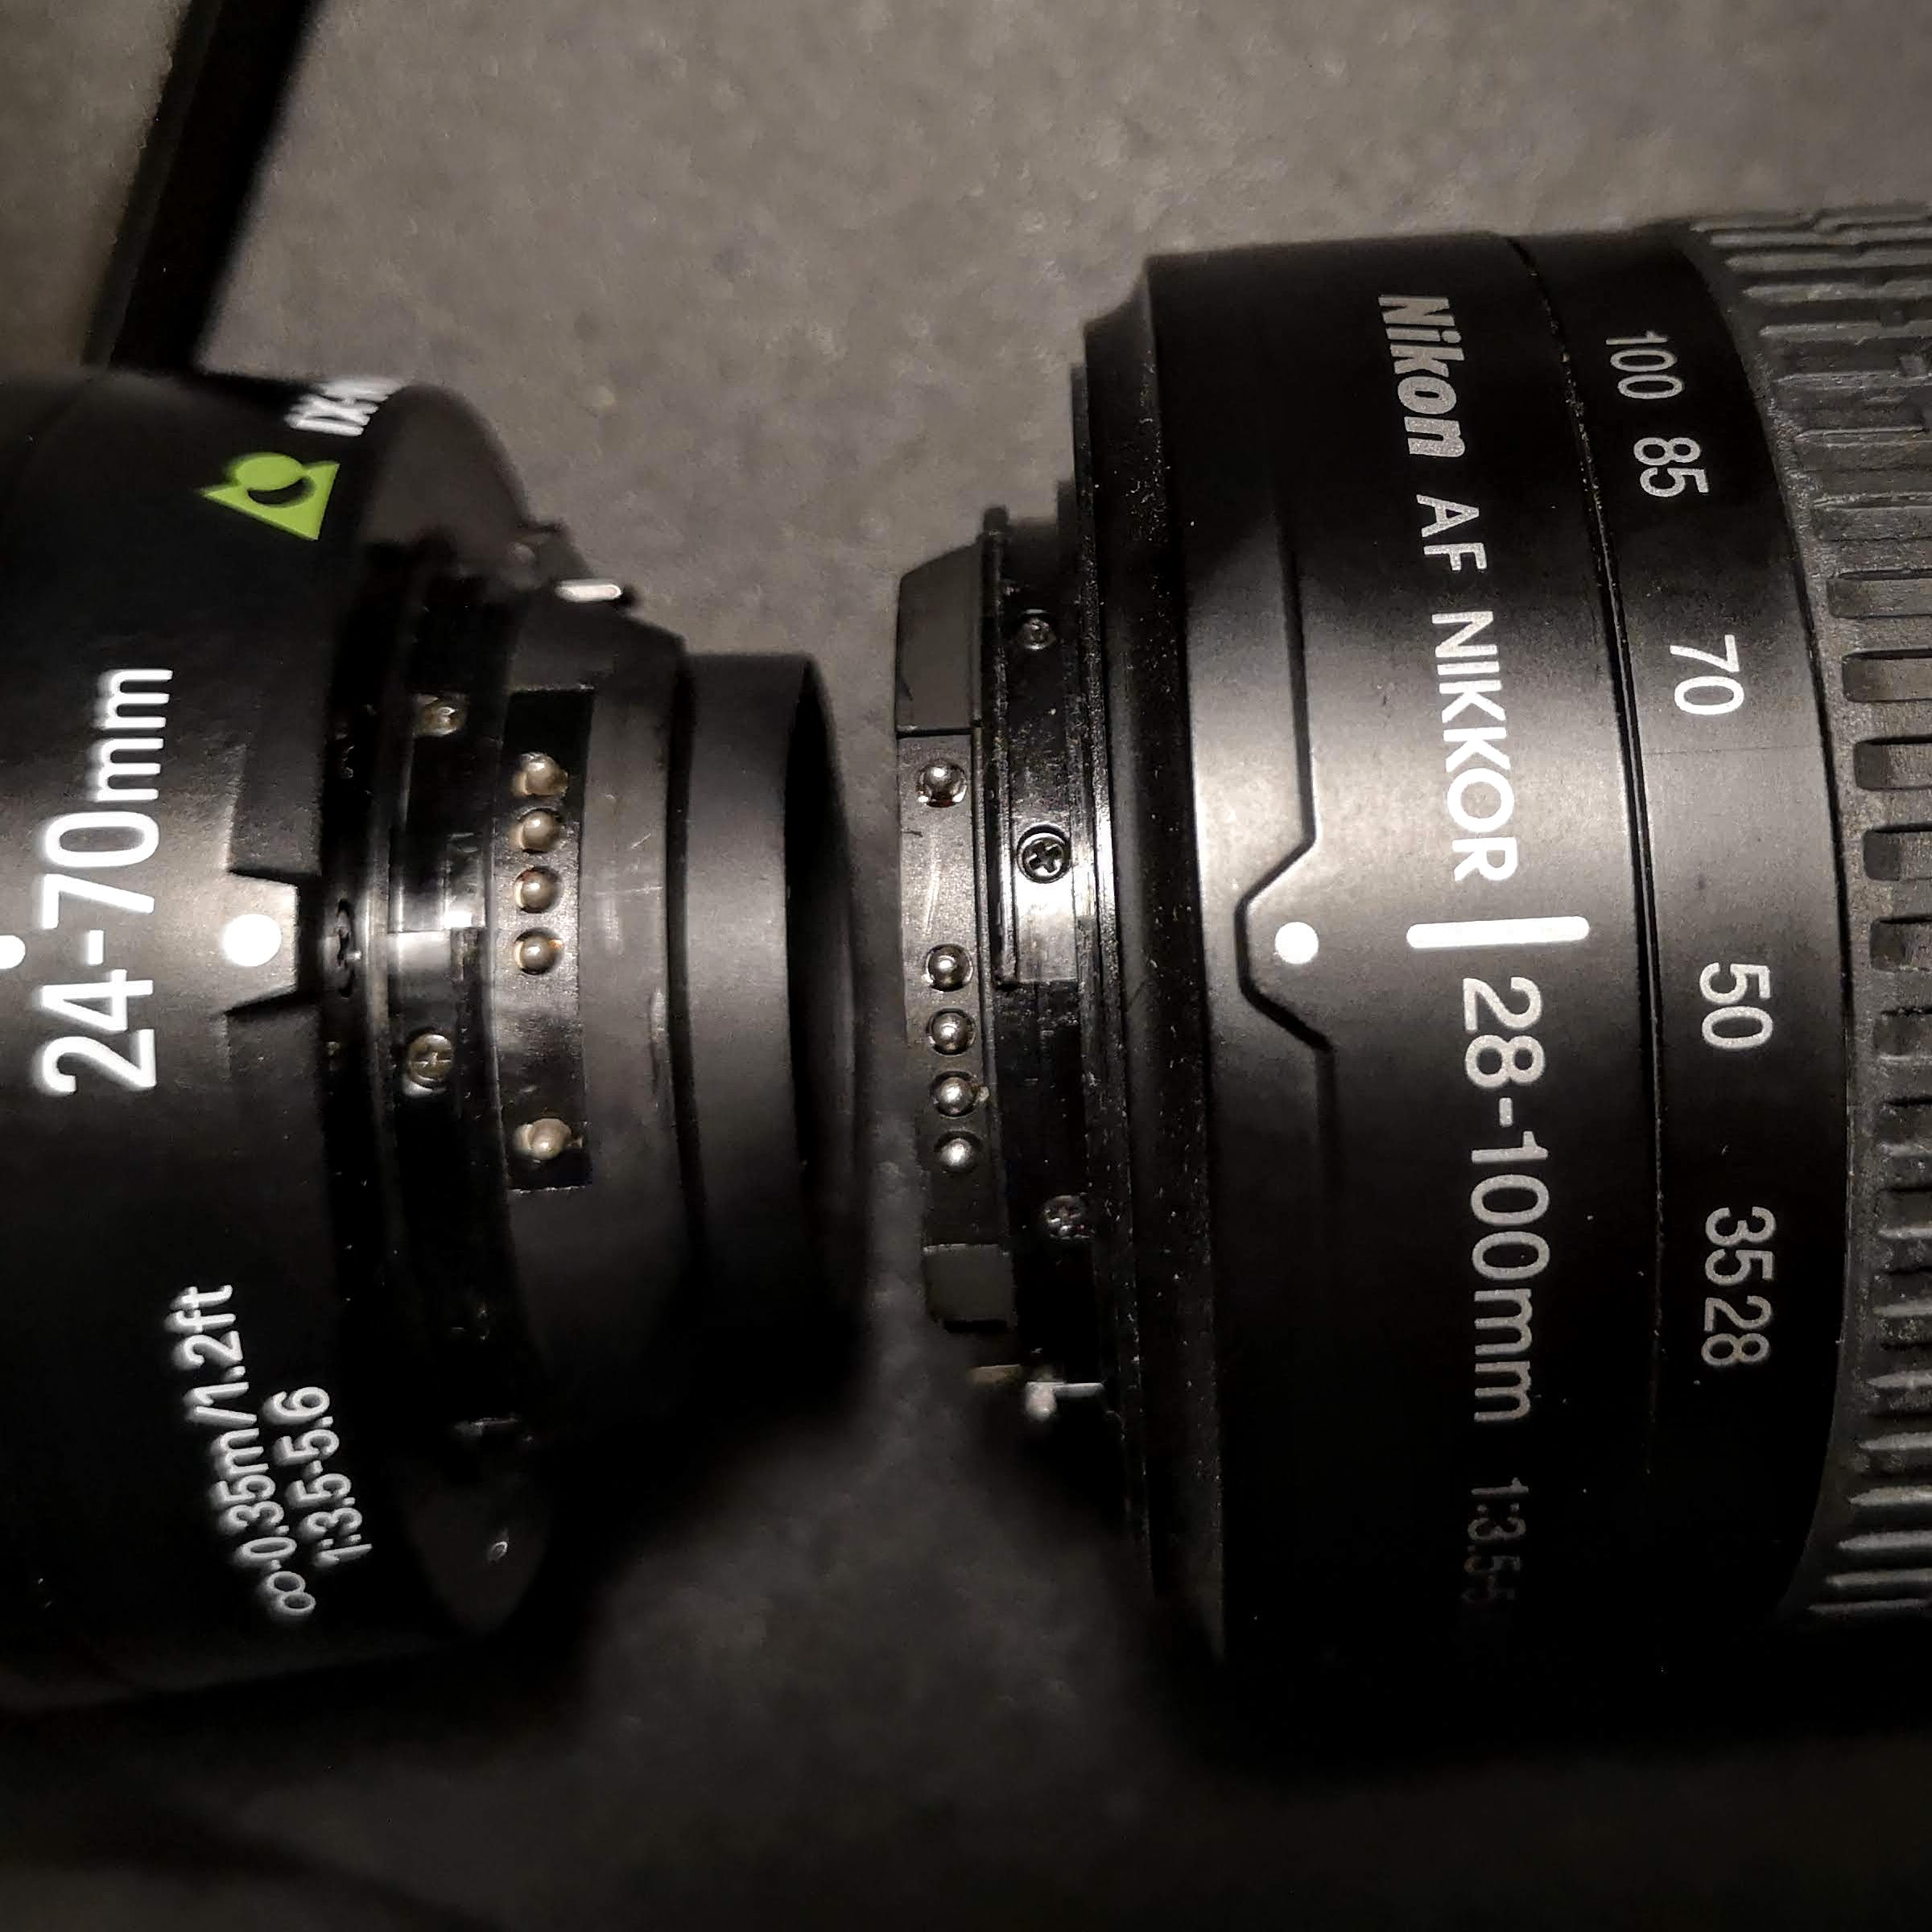 Nikkor IX 24-70mm (l) and AF Nikkor 28-100mm AF-D G (r). Note the massive difference in rear projection.